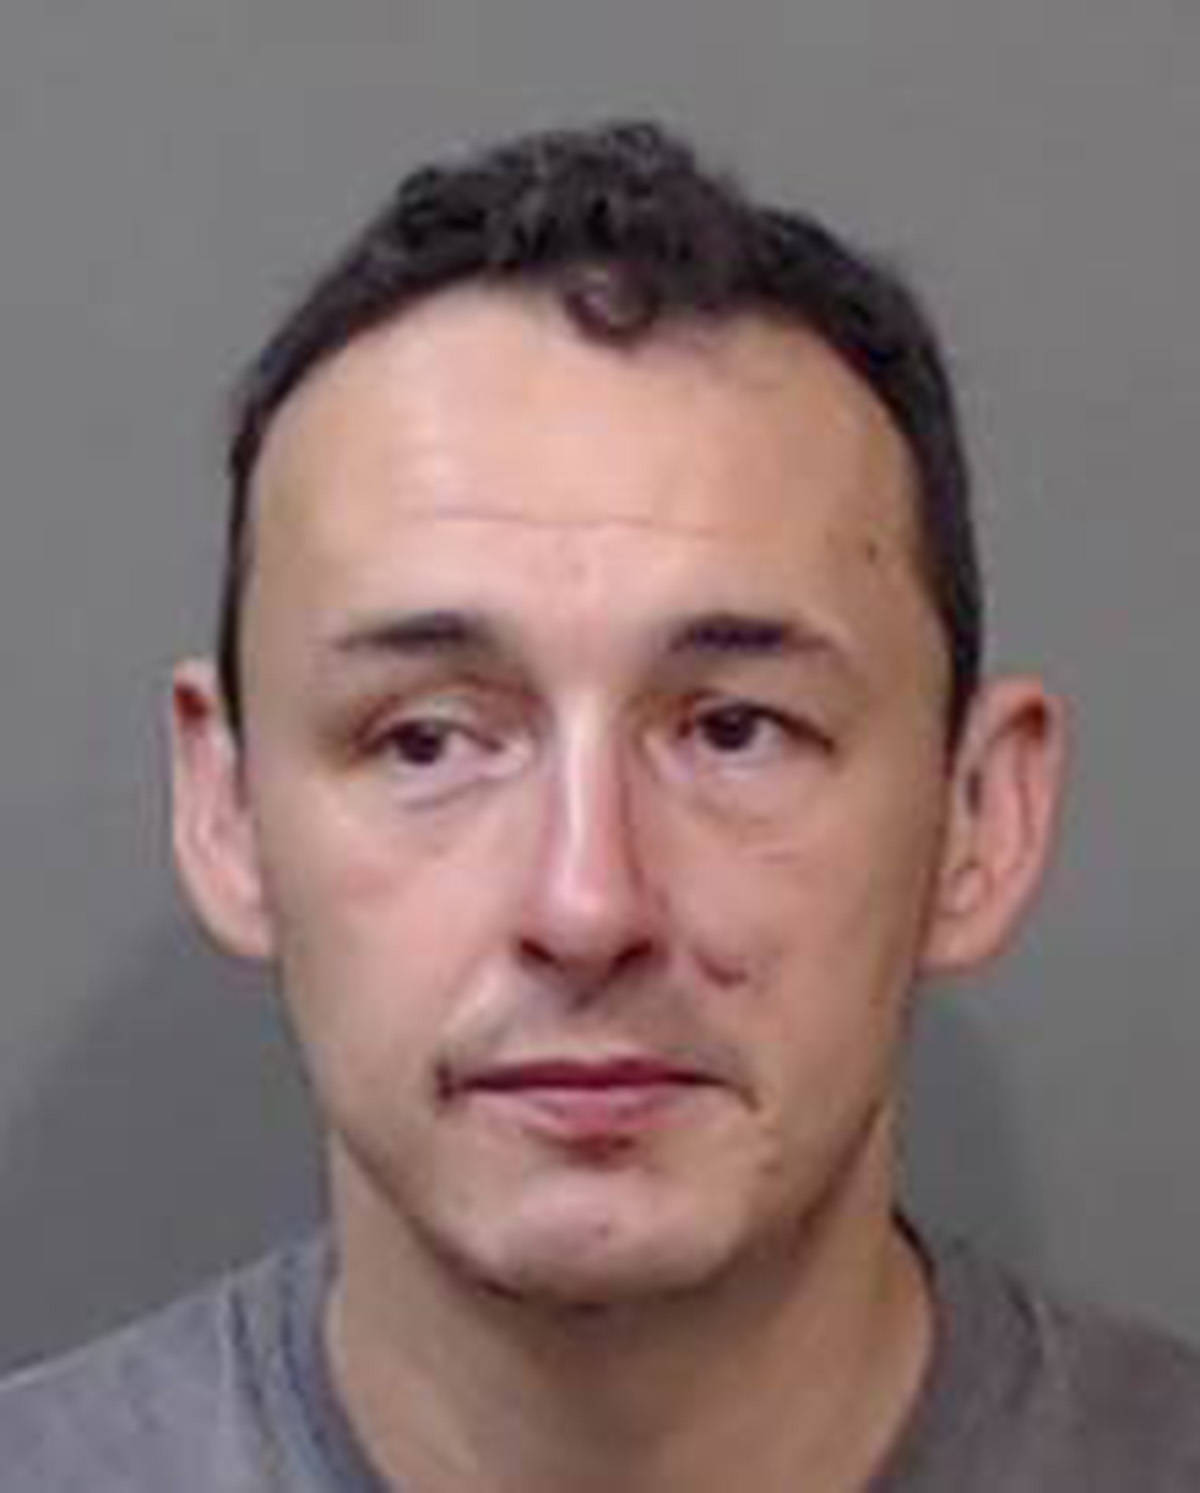 """Name: BRITTEN, Bradley Age: 39 Height: 6'2"""" ft Weight: 188 lbs Hair: Brown Eyes: Brown Wanted: Breach of Probation Warrant in effect: January 5, 2021 Parole Jurisdiction: Chilliwack, BC"""